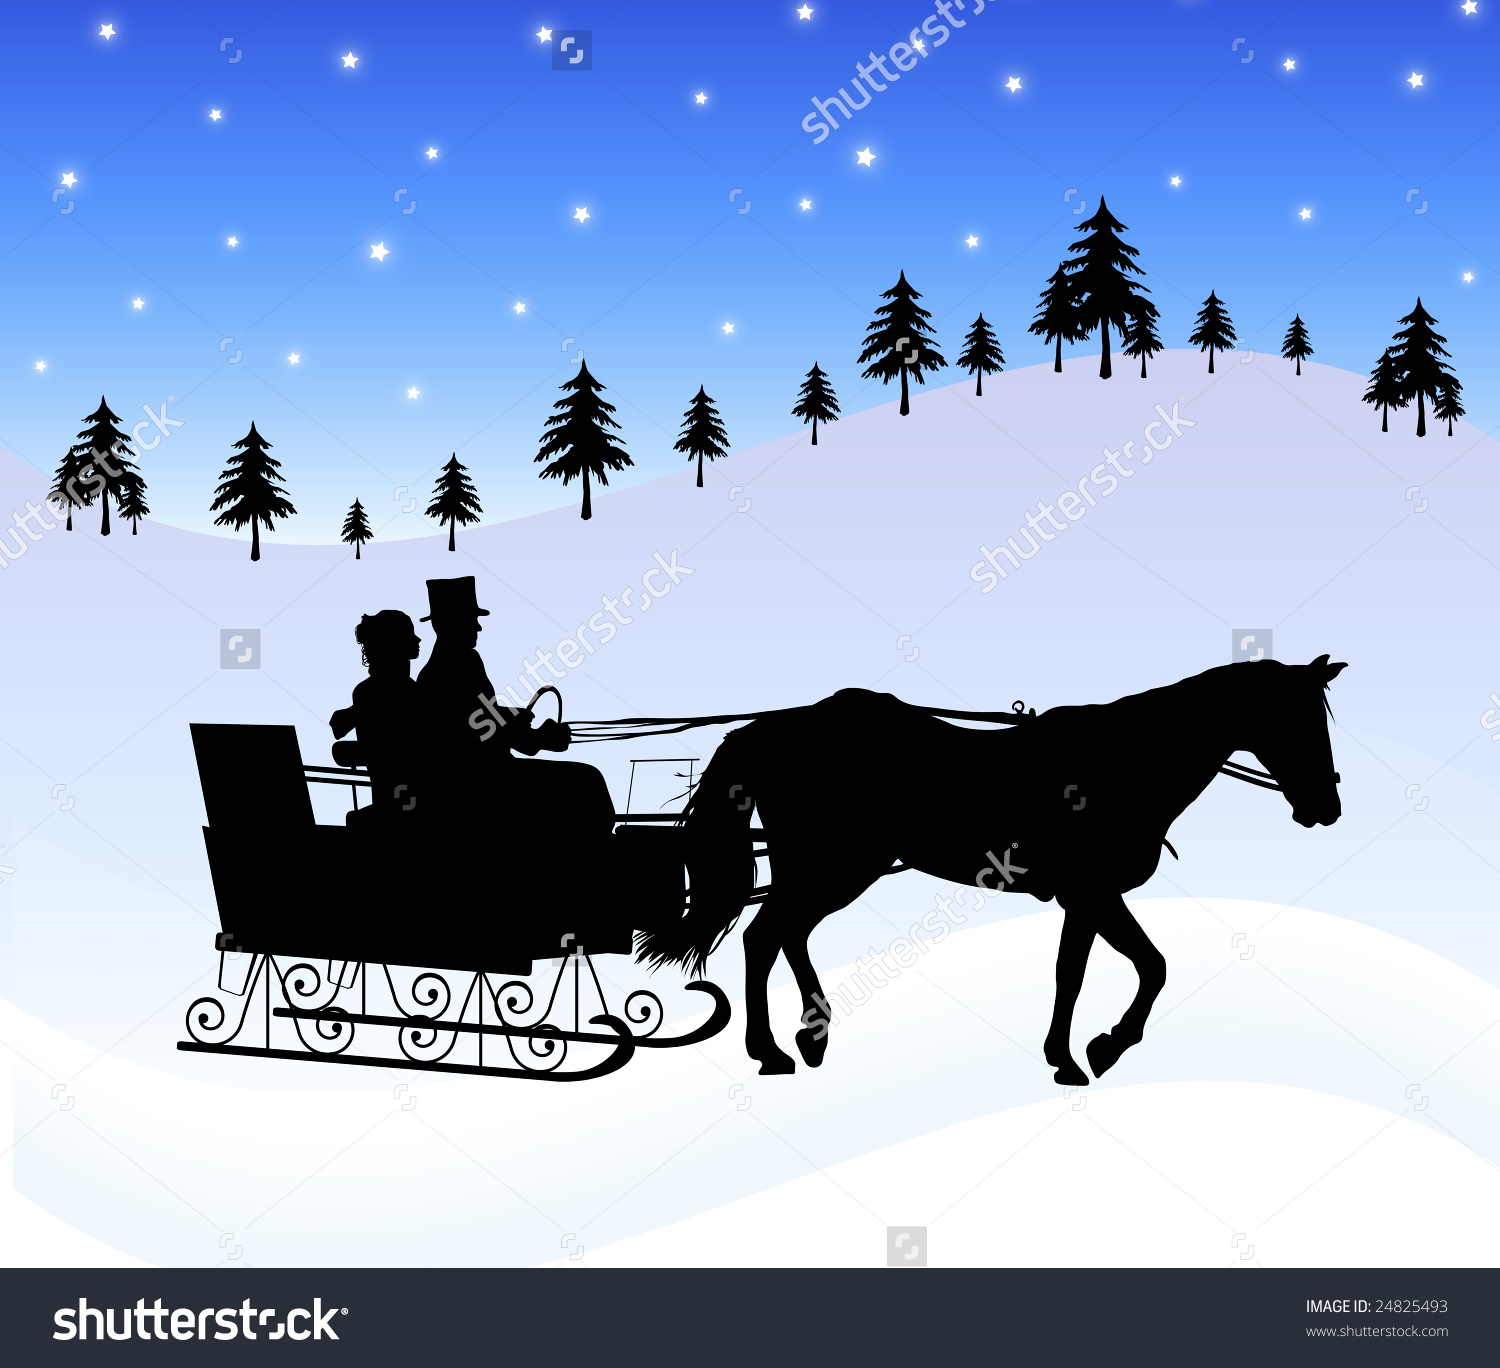 Silhouette Couple Horse Drawn Sleigh Stock Illustration 24825493.